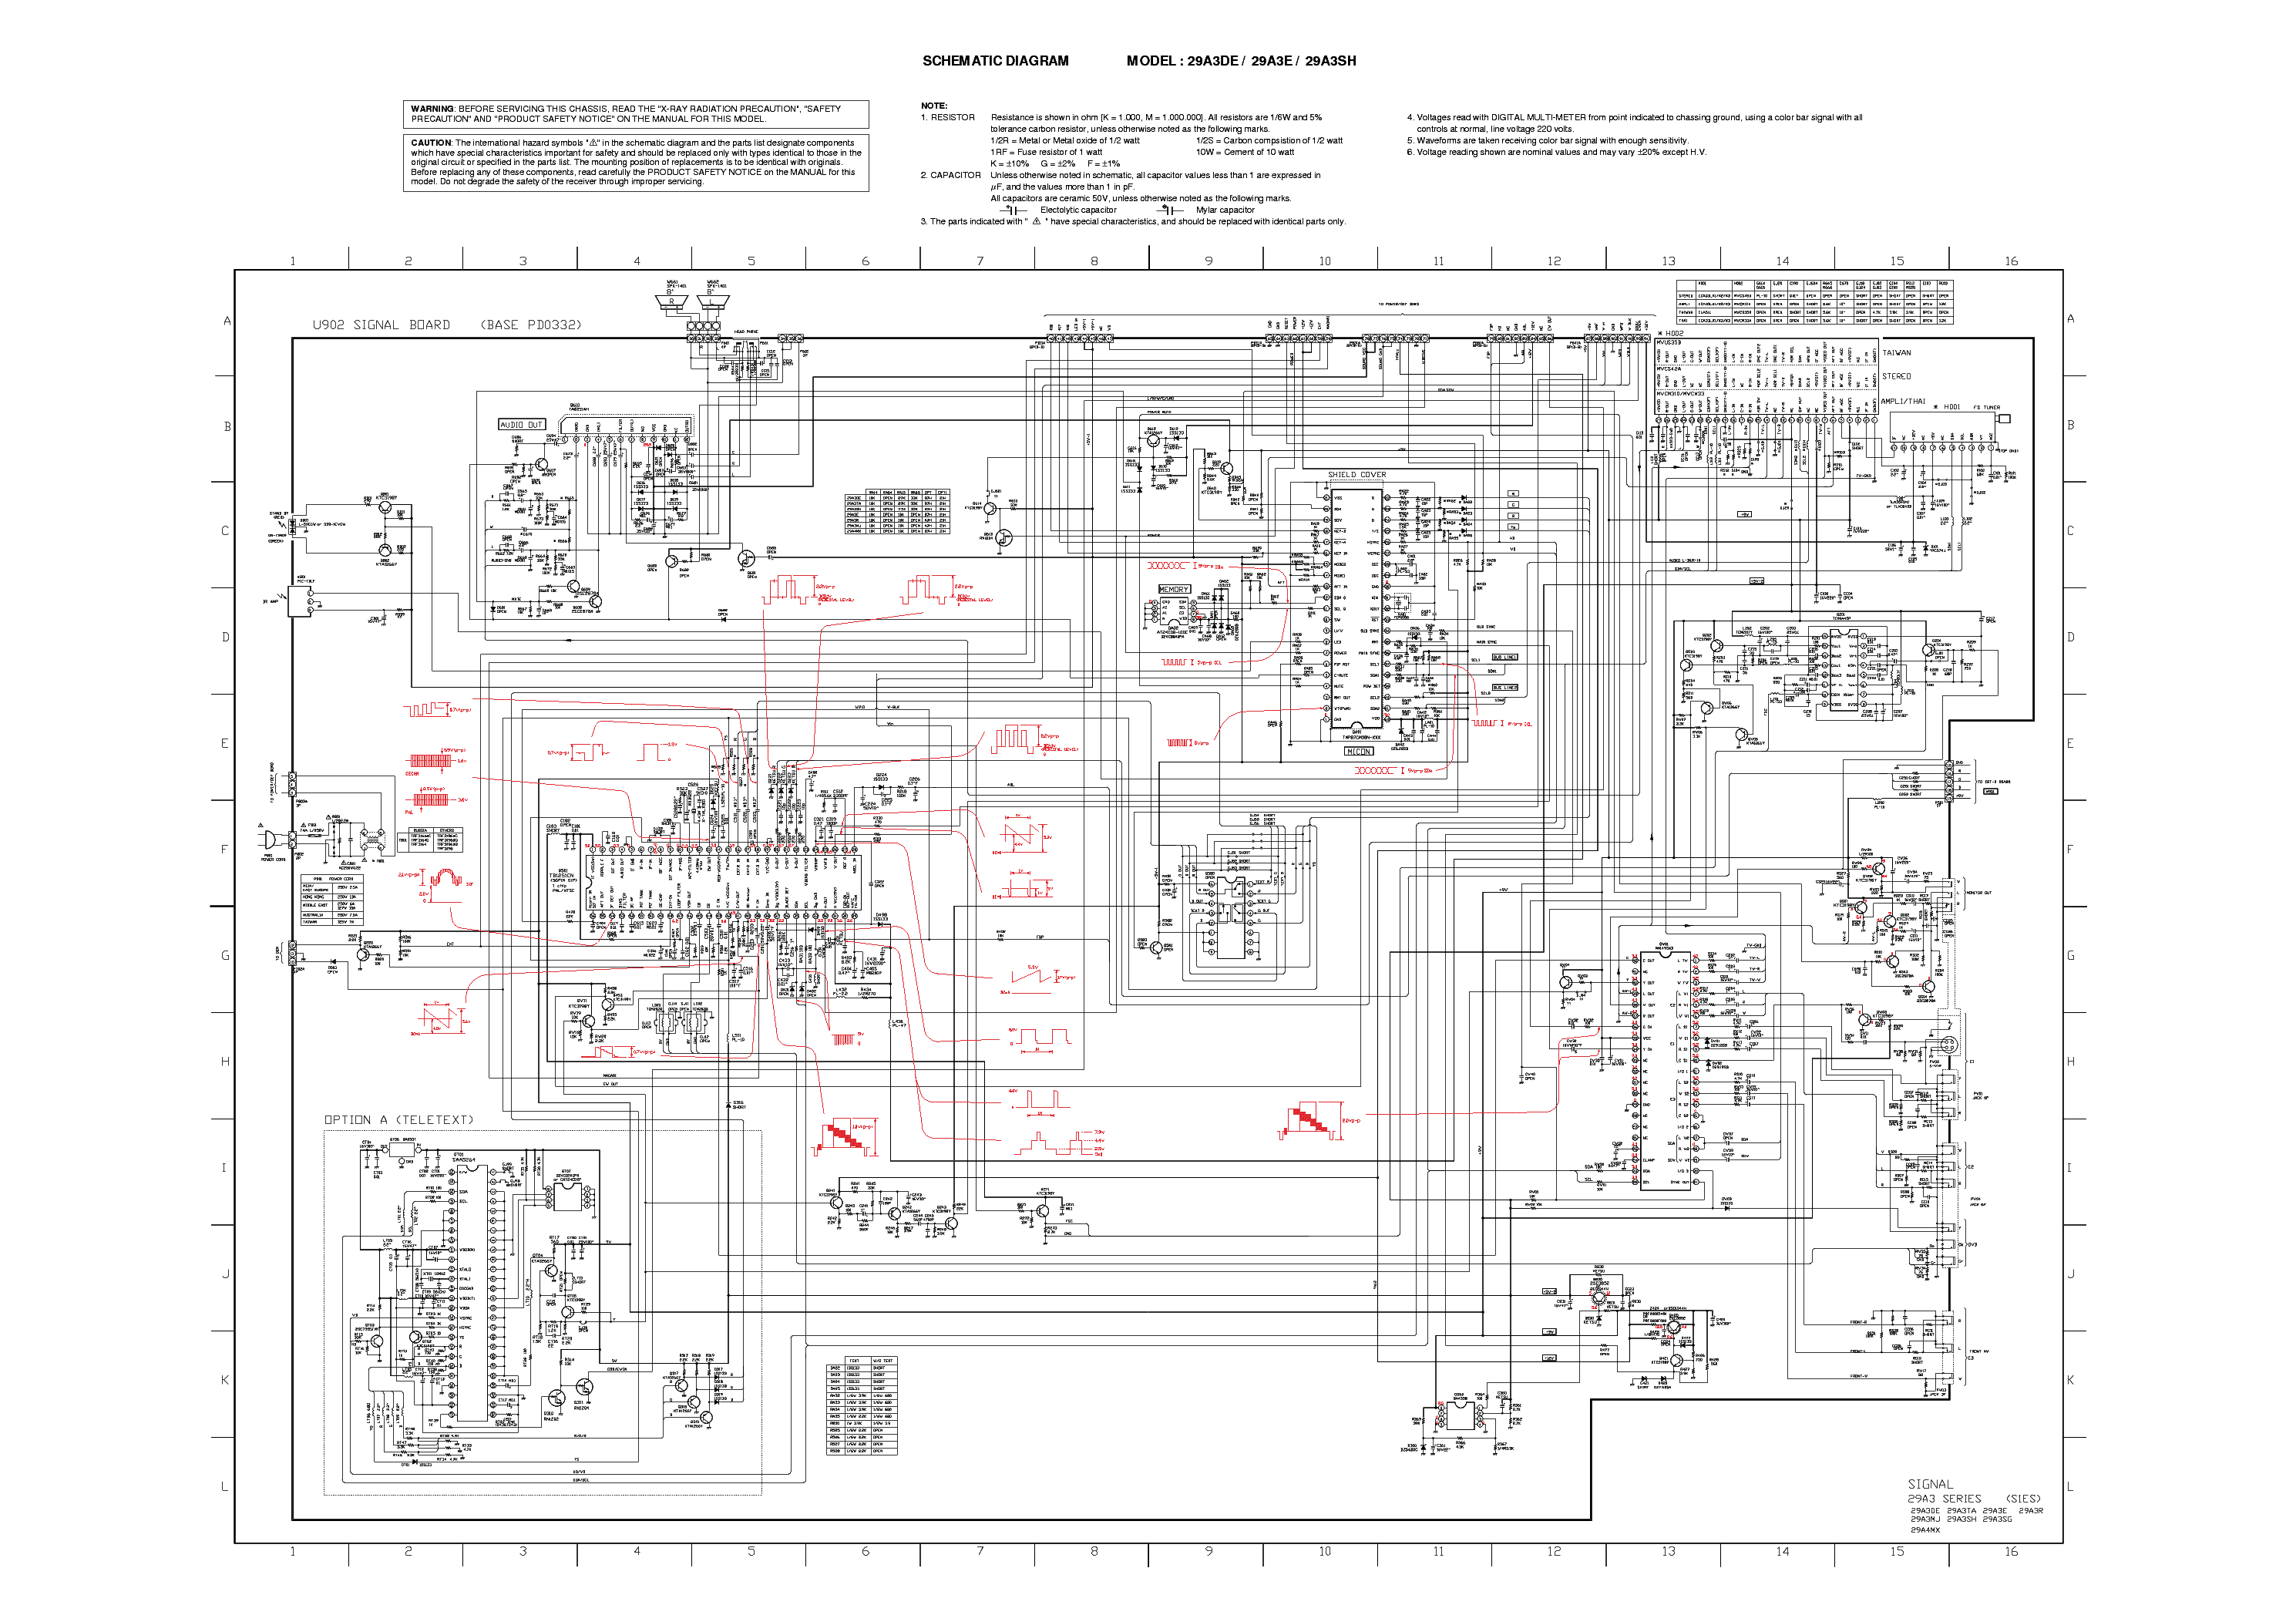 toshiba 2939db circuit diagram 2 page preview